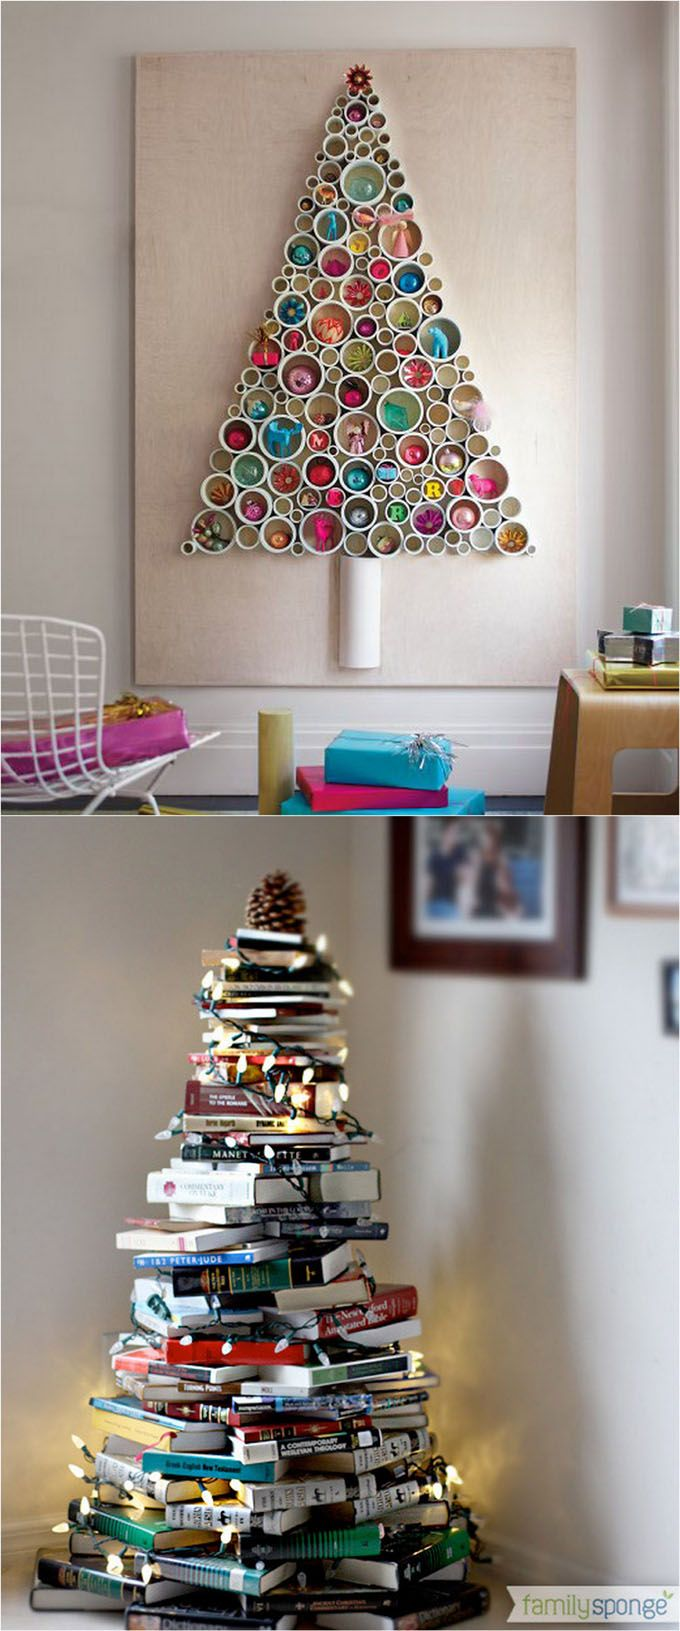 18 unconventional and beautiful diy christmas trees ideas to create unique christmas decorations for your home perfect for any space in your home - Unique Christmas Decorations